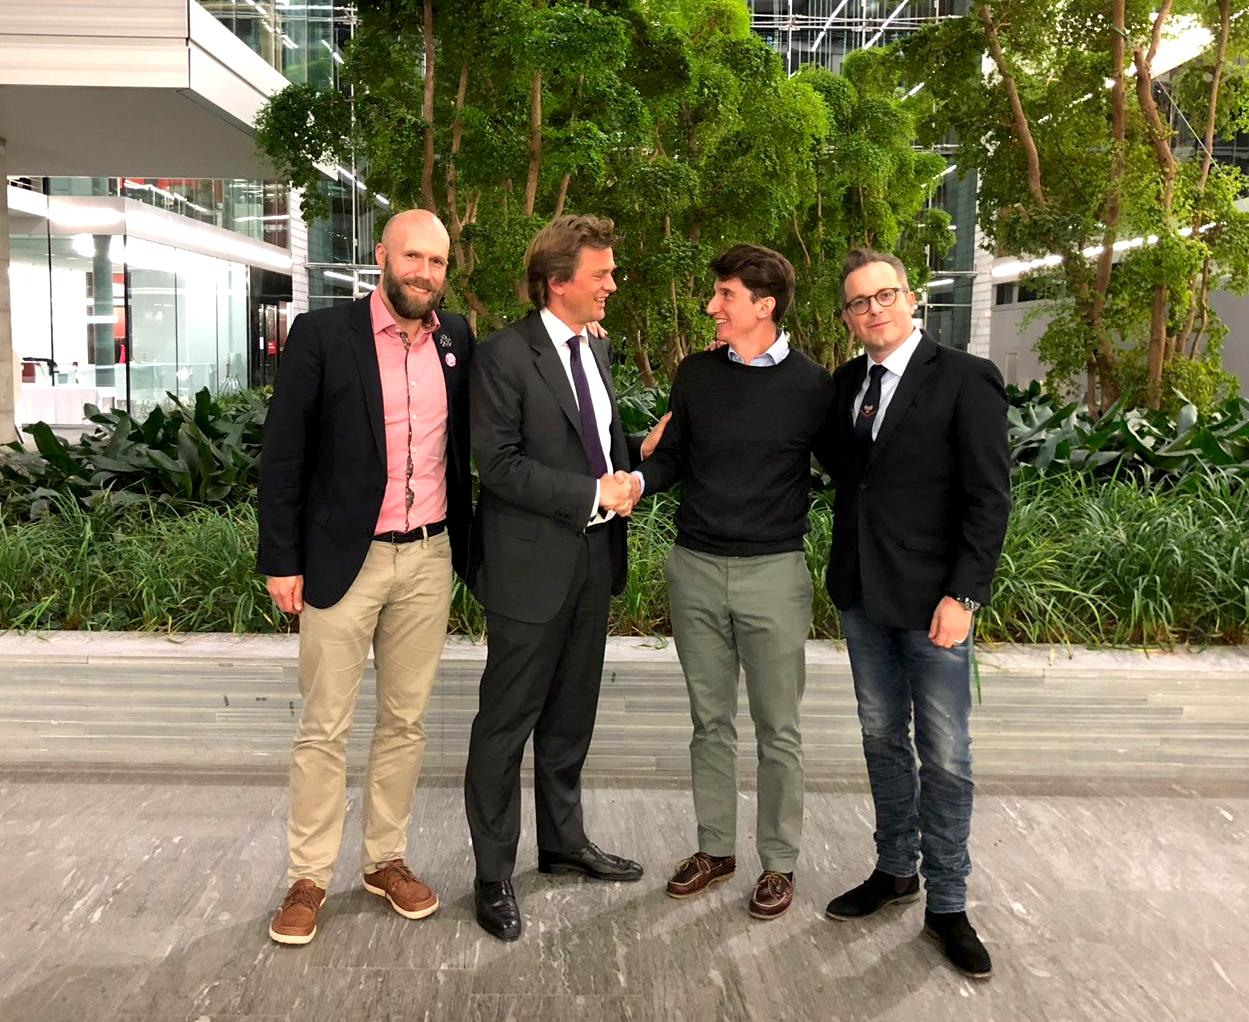 Left to right: Frederik Greegard (Head of Digital Financial Services PwC Switzerland), Dieter Wirth (Member of the Management Board of PwC Switzerland & Executive Team PwC Europe), Nicolo Stoehr (CEO CFC) and Dr. Guenther Dobrauz-Saldapenna (Partner & Leader PwC Legal Switzerland).